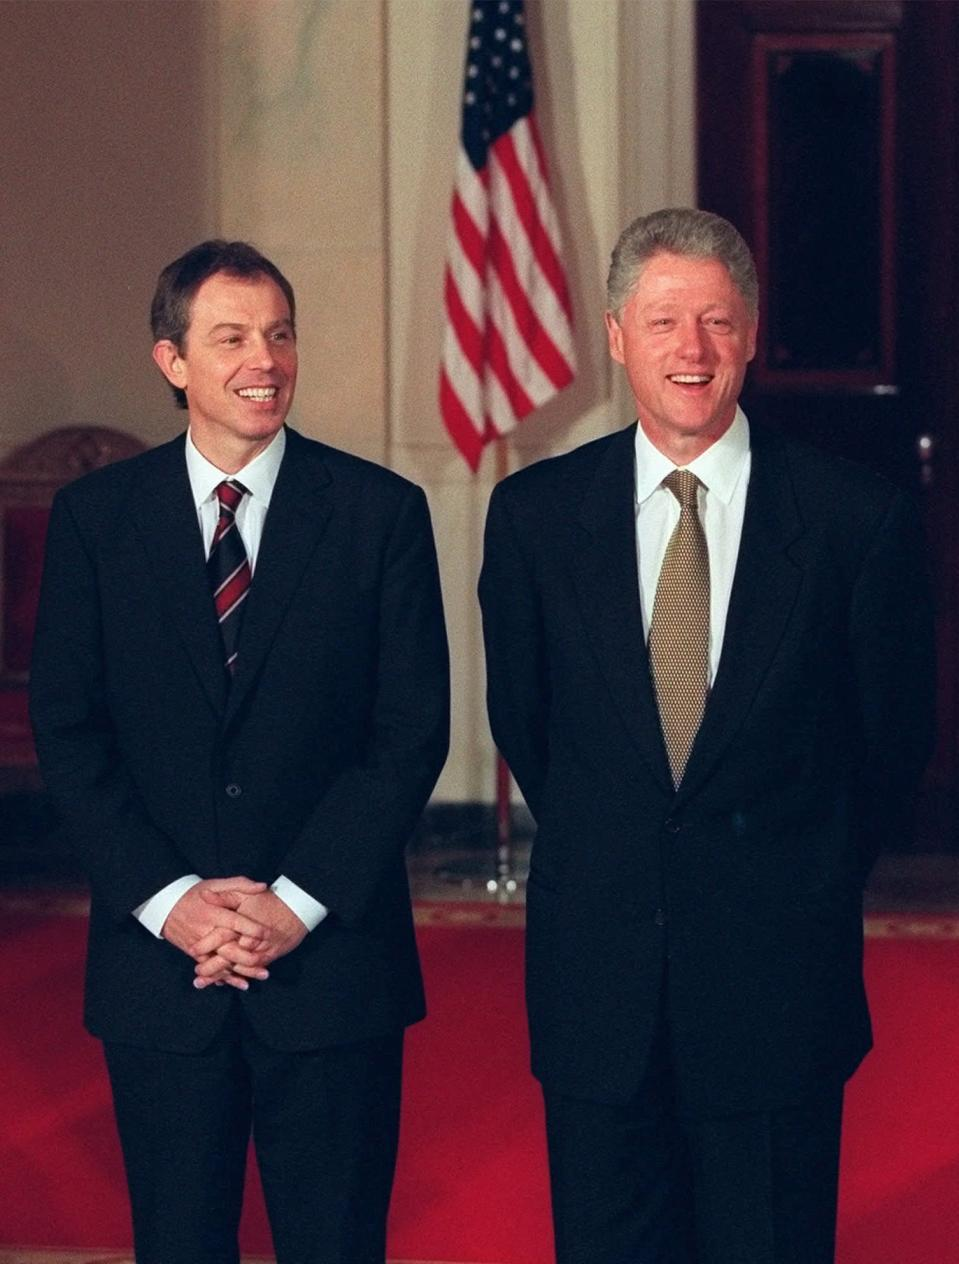 """FILE - In this Feb. 5, 1998, file photo President Bill Clinton, right, and British Prime Minister Tony Blair stand during a welcoming ceremony for Blair at the White House in Washington. On Feb. 6, 1988, during a Clinton news conference he was asked at what point he might decide the crisis was too much to put his family through anymore and resign. """"Never,"""" he said, stone-faced. (AP Photo/J. Scott Applewhite, File)"""